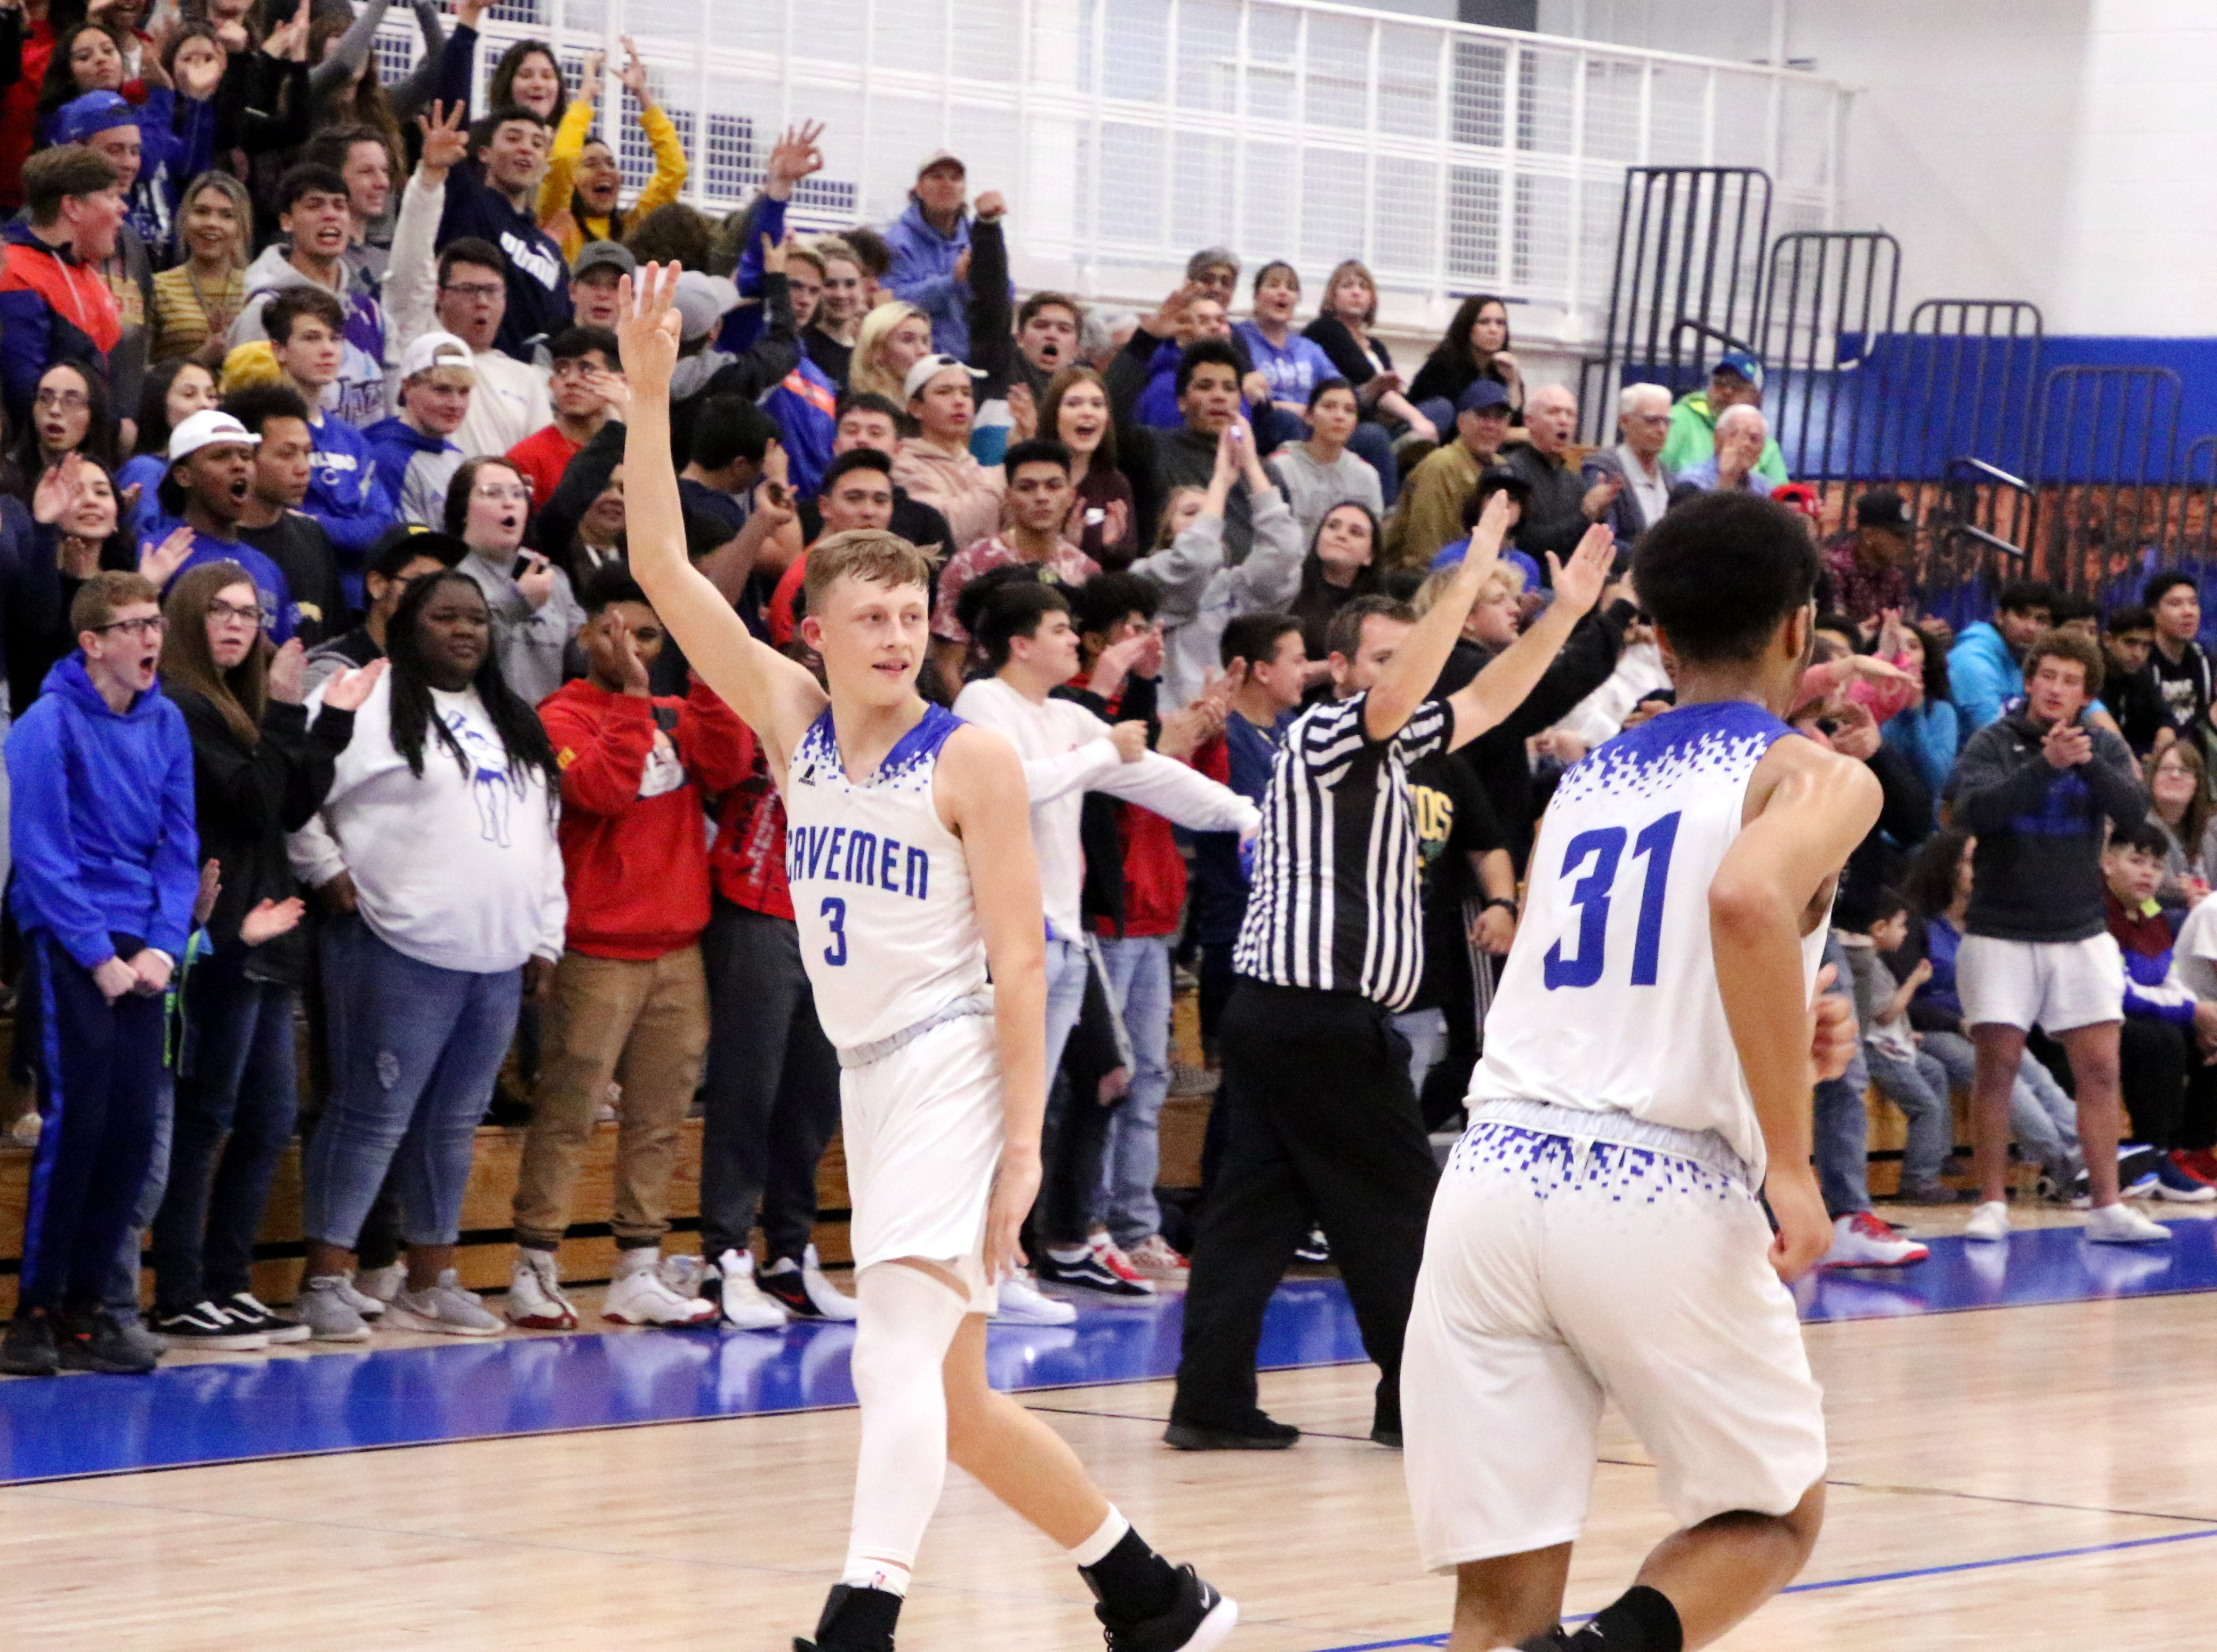 Riley Hestand (3) celebrates making a three-pointer to start out the fourth quarter on Friday. Carlsbad went on a 7-0 to start the quarter en route to a 66-49 win over Gadsden.